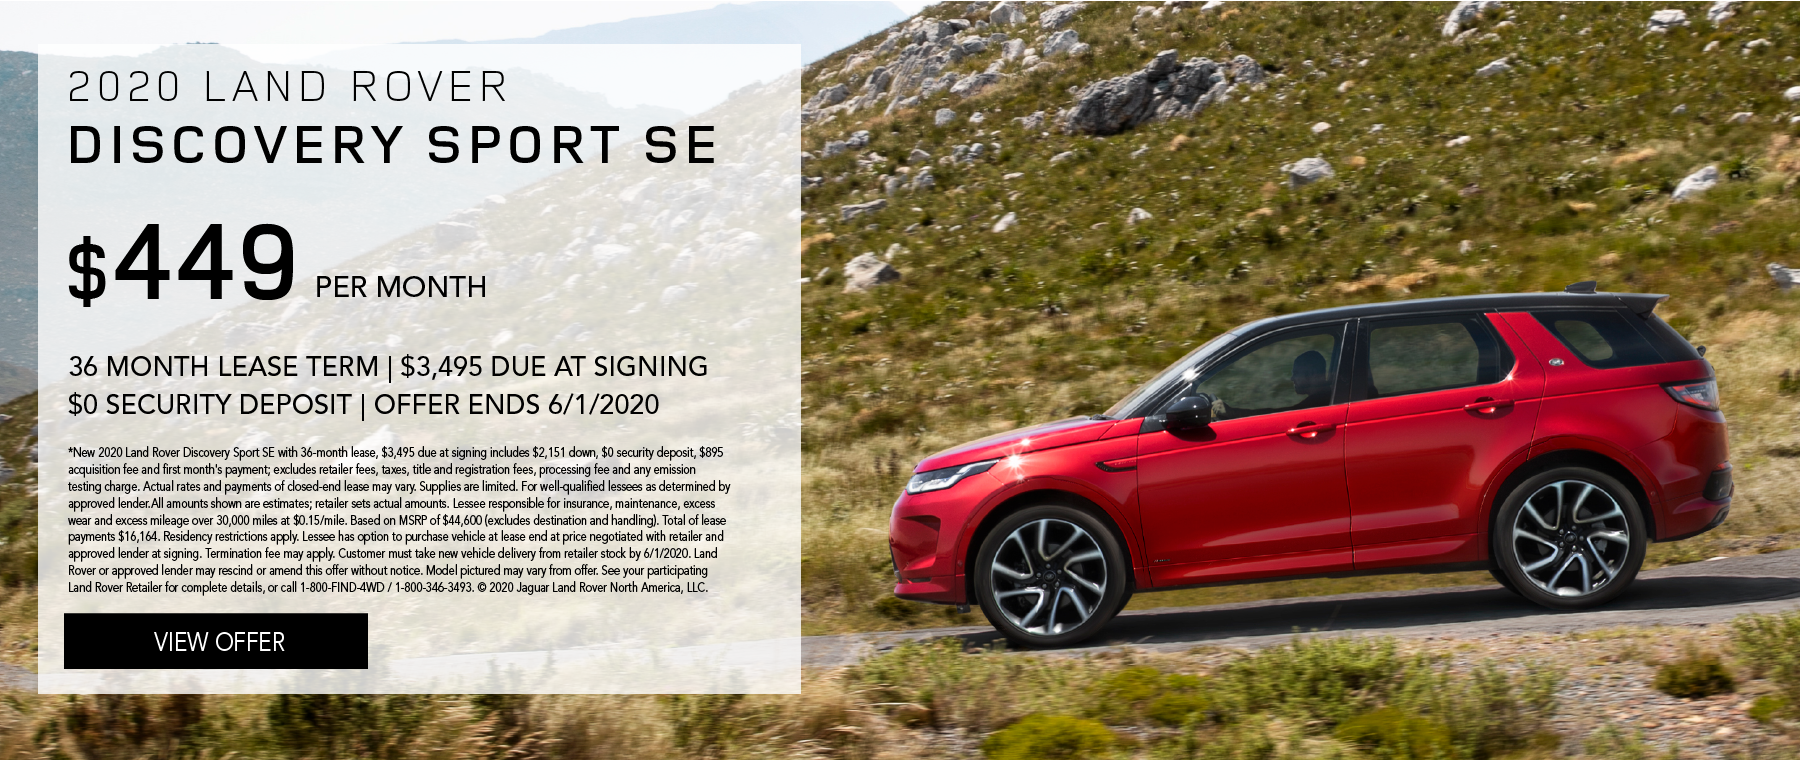 2020 LAND ROVER DISCOVERY SPORT SE. $449 PER MONTH. 36 MONTH LEASE TERM. $3,495 CASH DUE AT SIGNING. $0 SECURITY DEPOSIT. 10,000 MILES PER YEAR. EXCLUDES RETAILER FEES, TAXES, TITLE AND REGISTRATION FEES, PROCESSING FEE AND ANY EMISSION TESTING CHARGE. OFFER ENDS 6/1/2020.